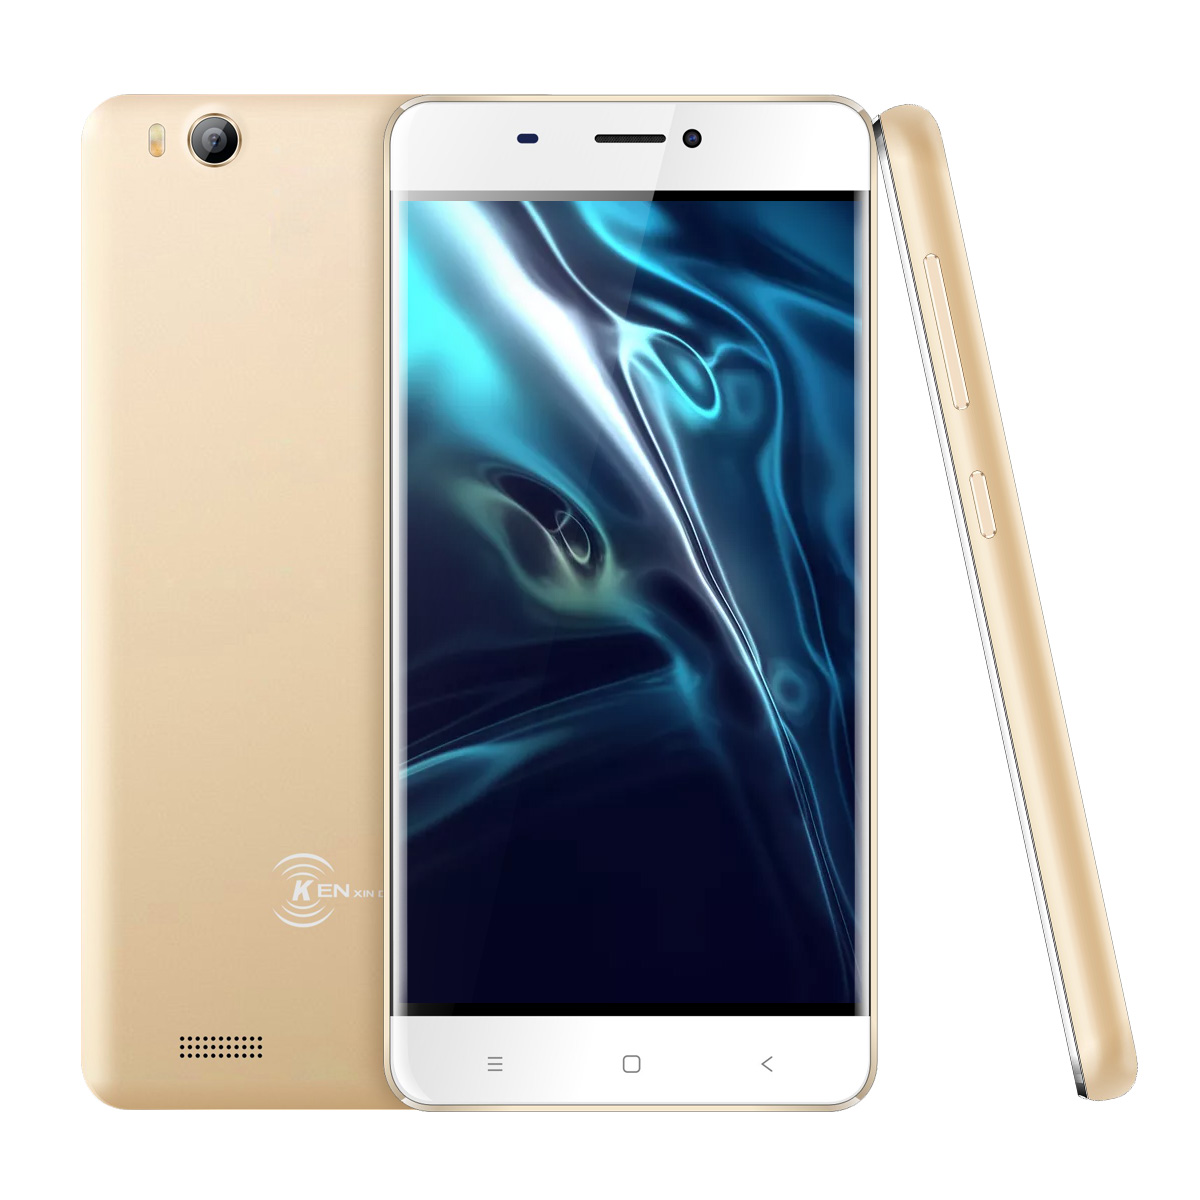 Wholesale V5 3G Smartphone - Android 7.0 OS, Quad Core CPU 4.0-Inch Display, 1500mAh Battery, Front & Rear Camera (Gold)